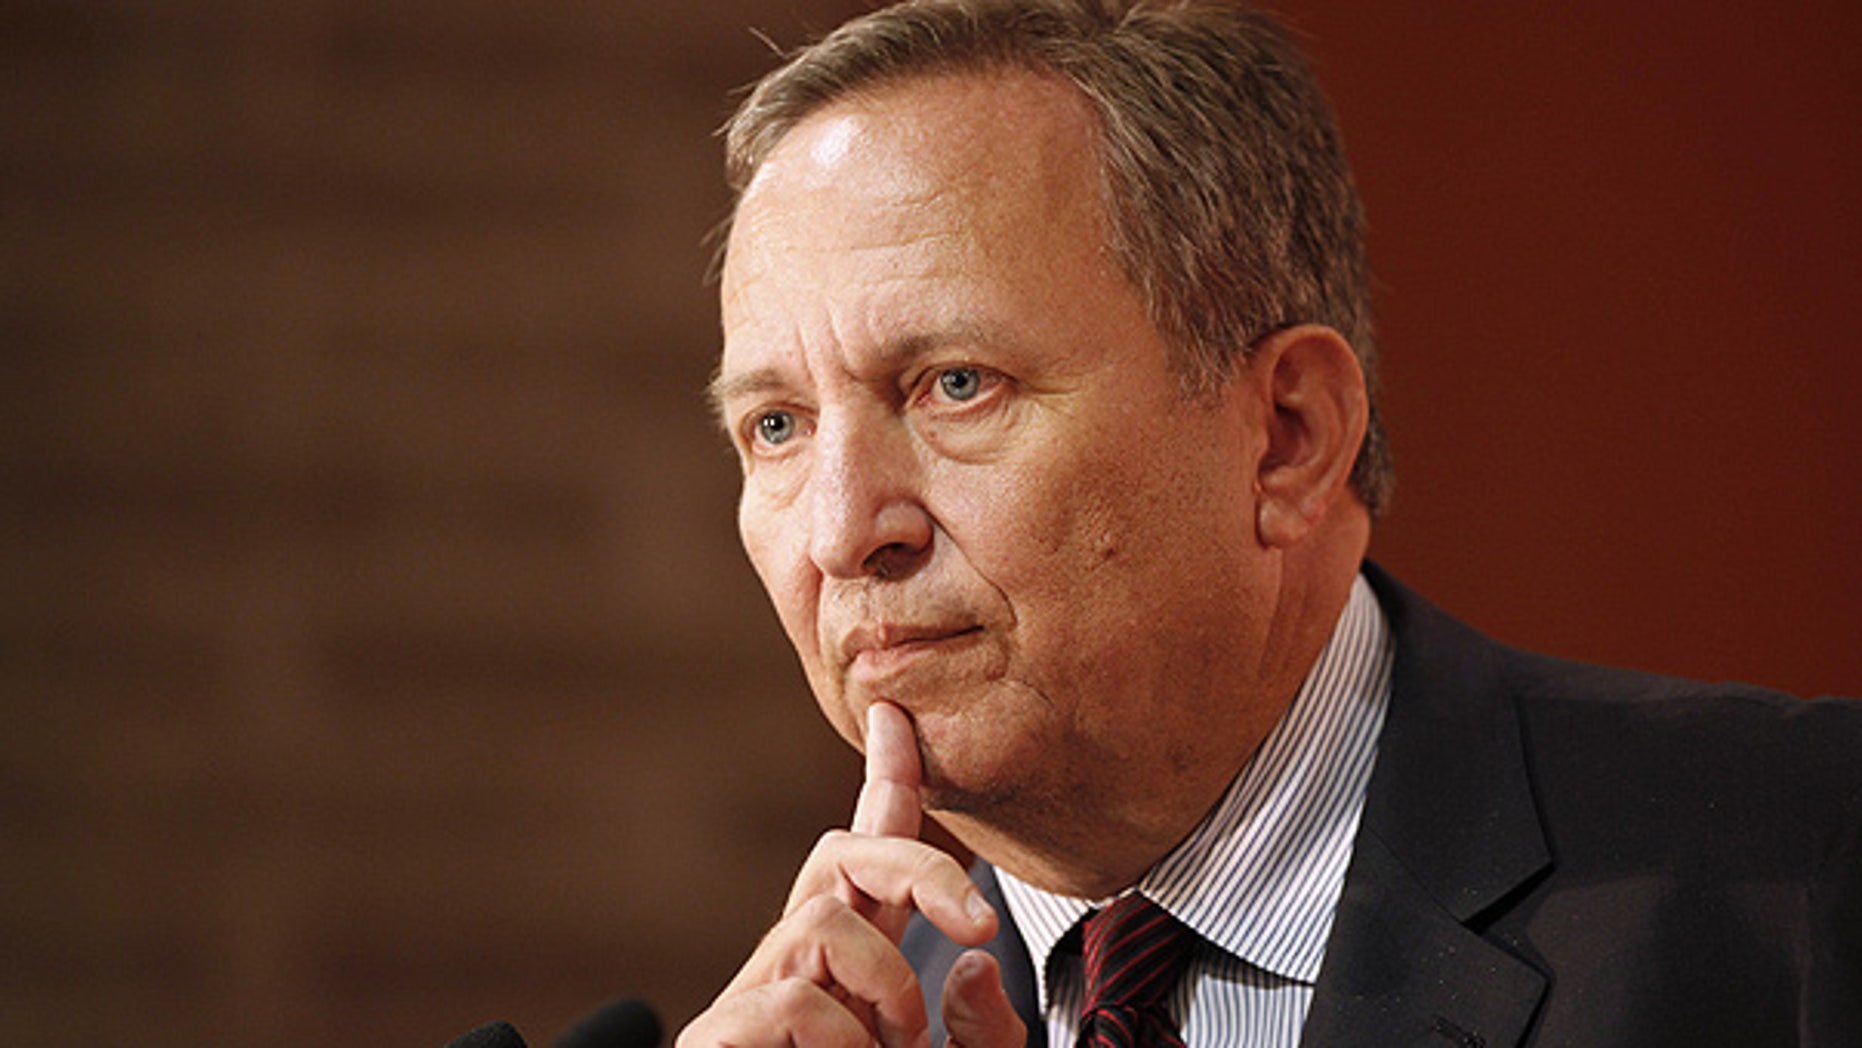 Lawrence Summers, seen here in New York, plans to leave the White House at the end of the year.